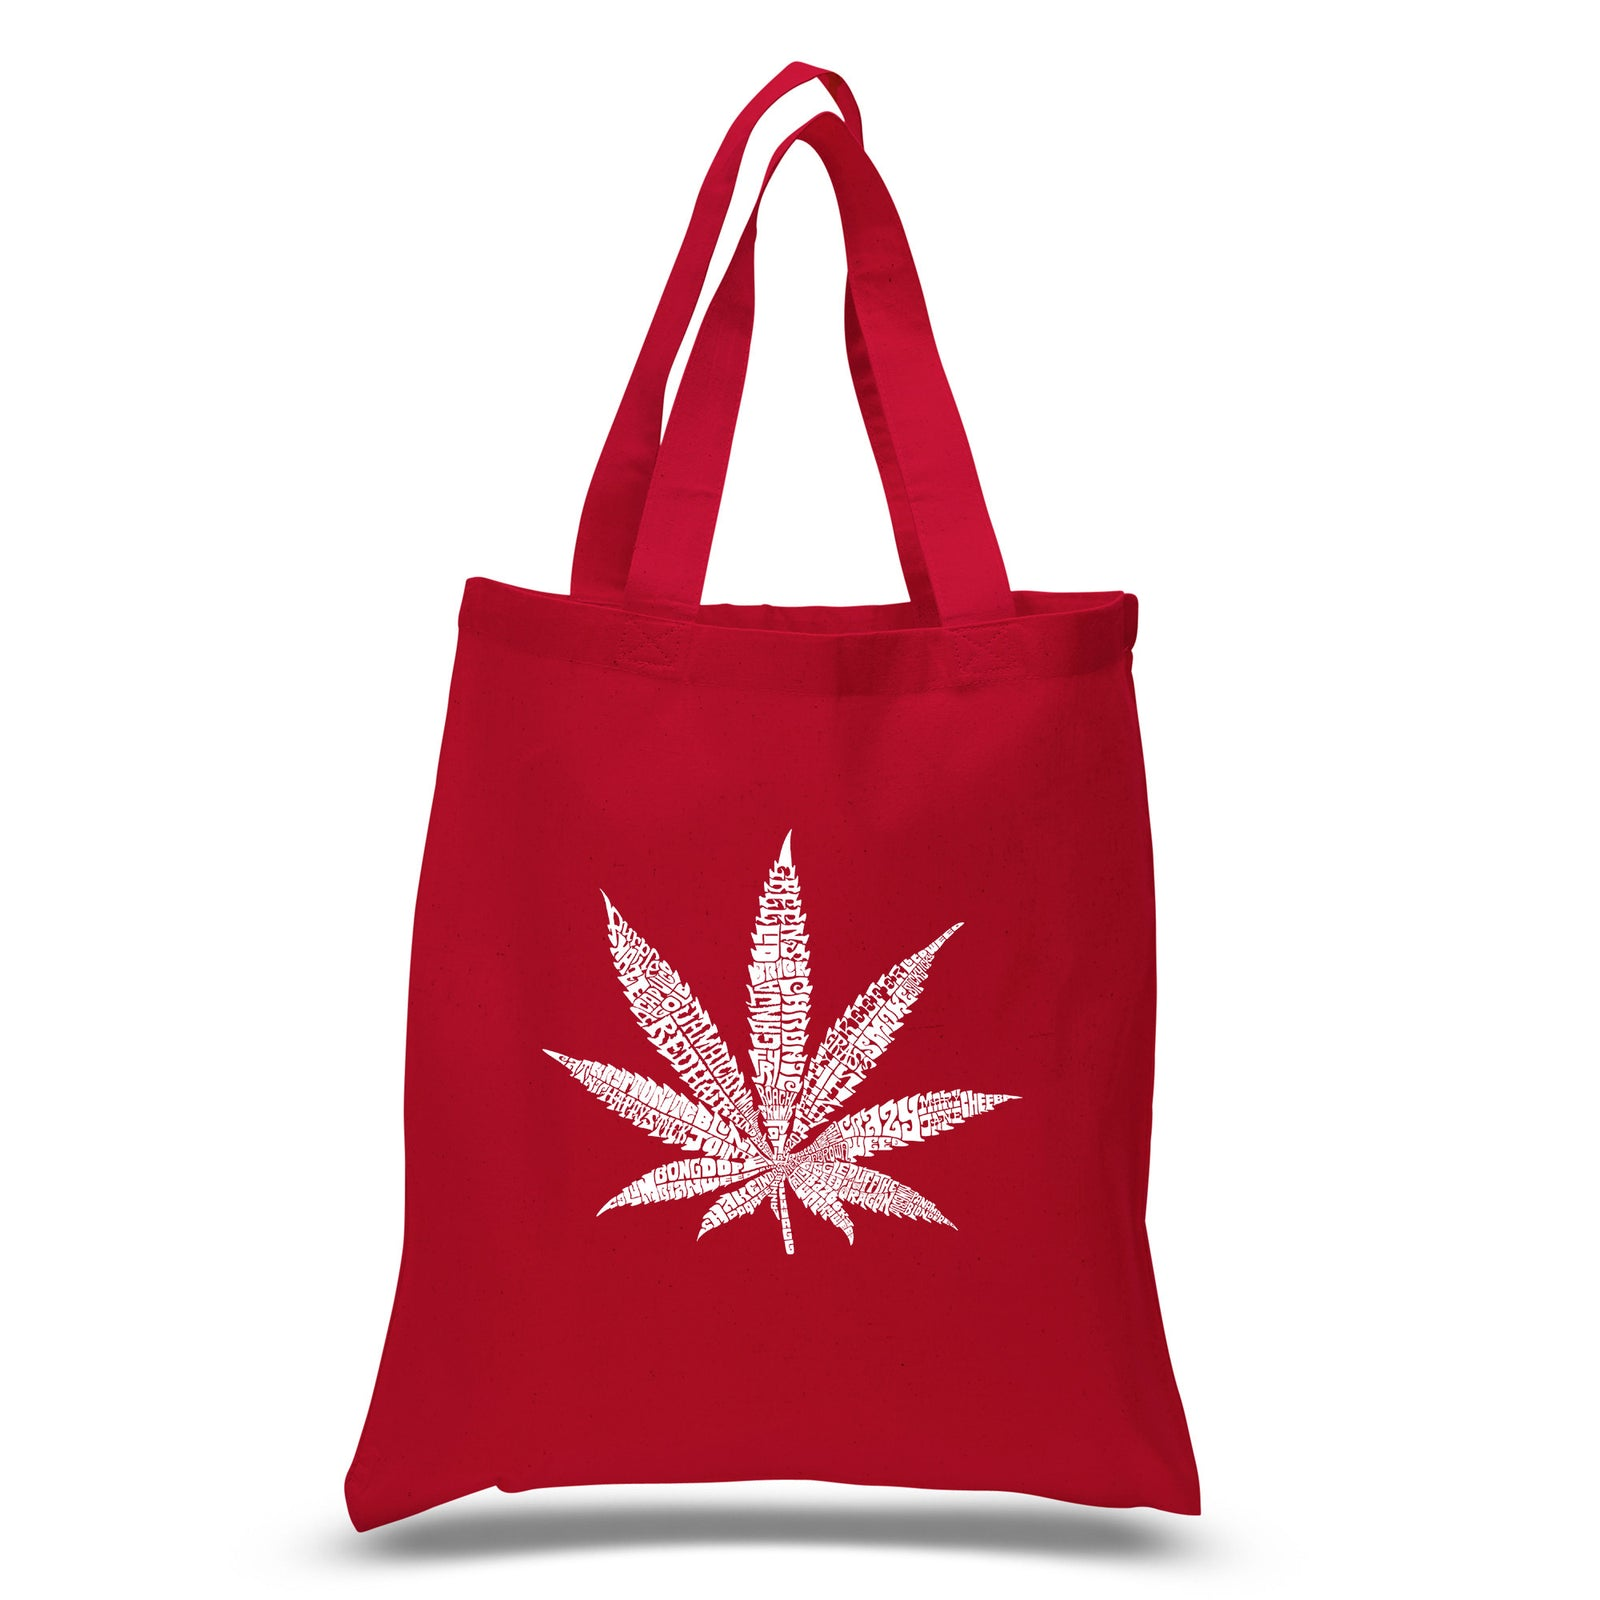 Small Tote Bag - 50 DIFFERENT STREET TERMS FOR MARIJUANA